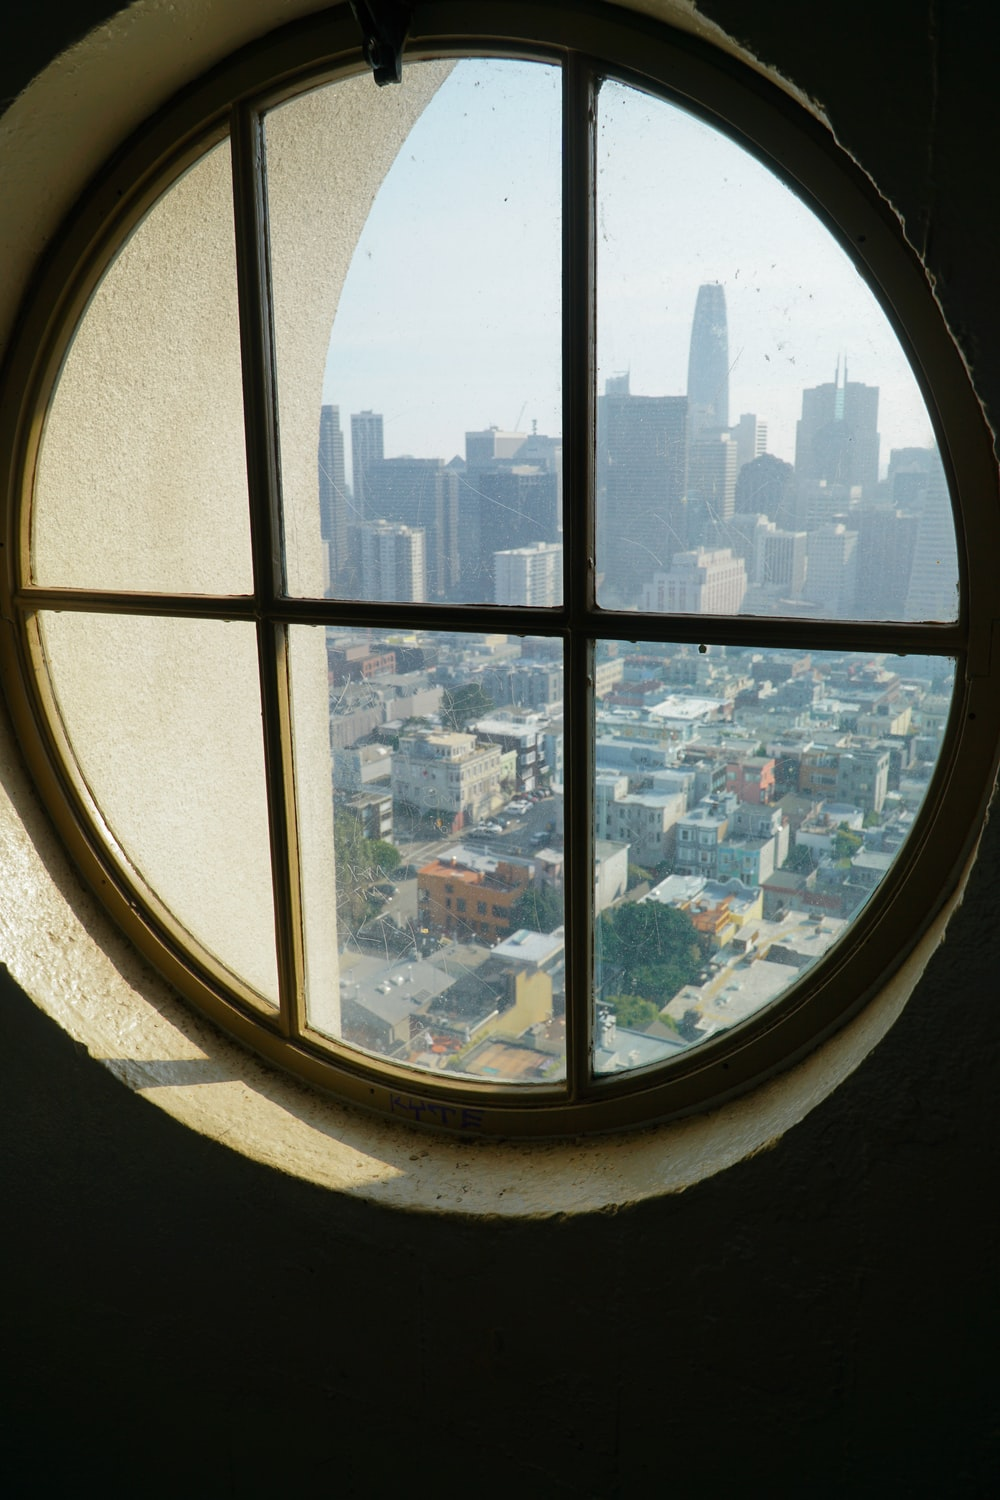 closed window viewing city with high-rise buildings